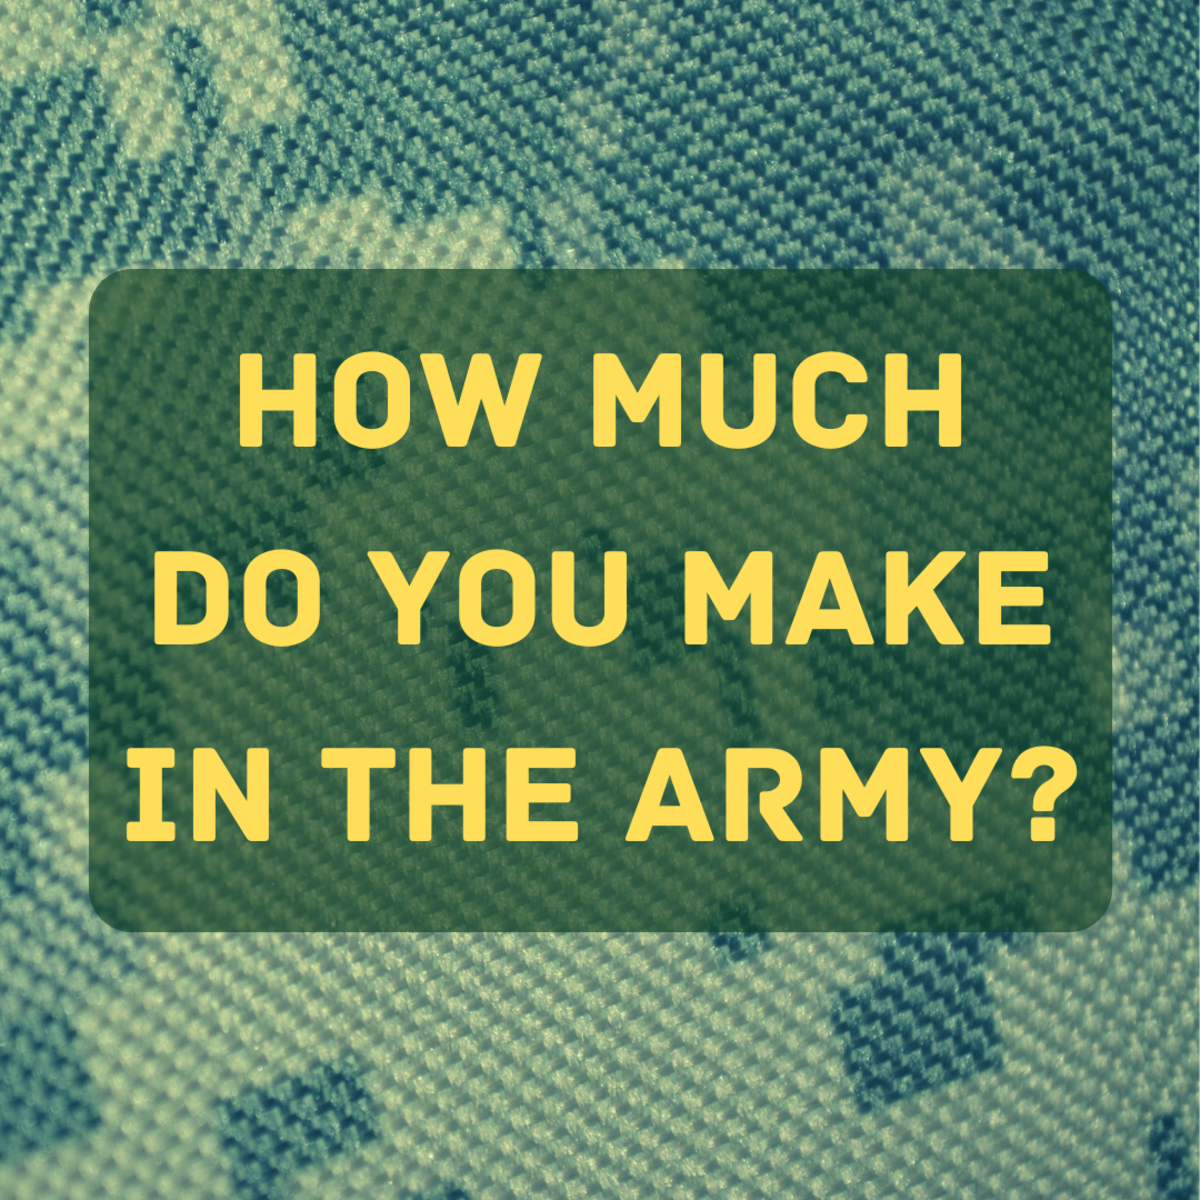 Discover how military pay compares to civilian pay, and see if joining the Army is worth it.